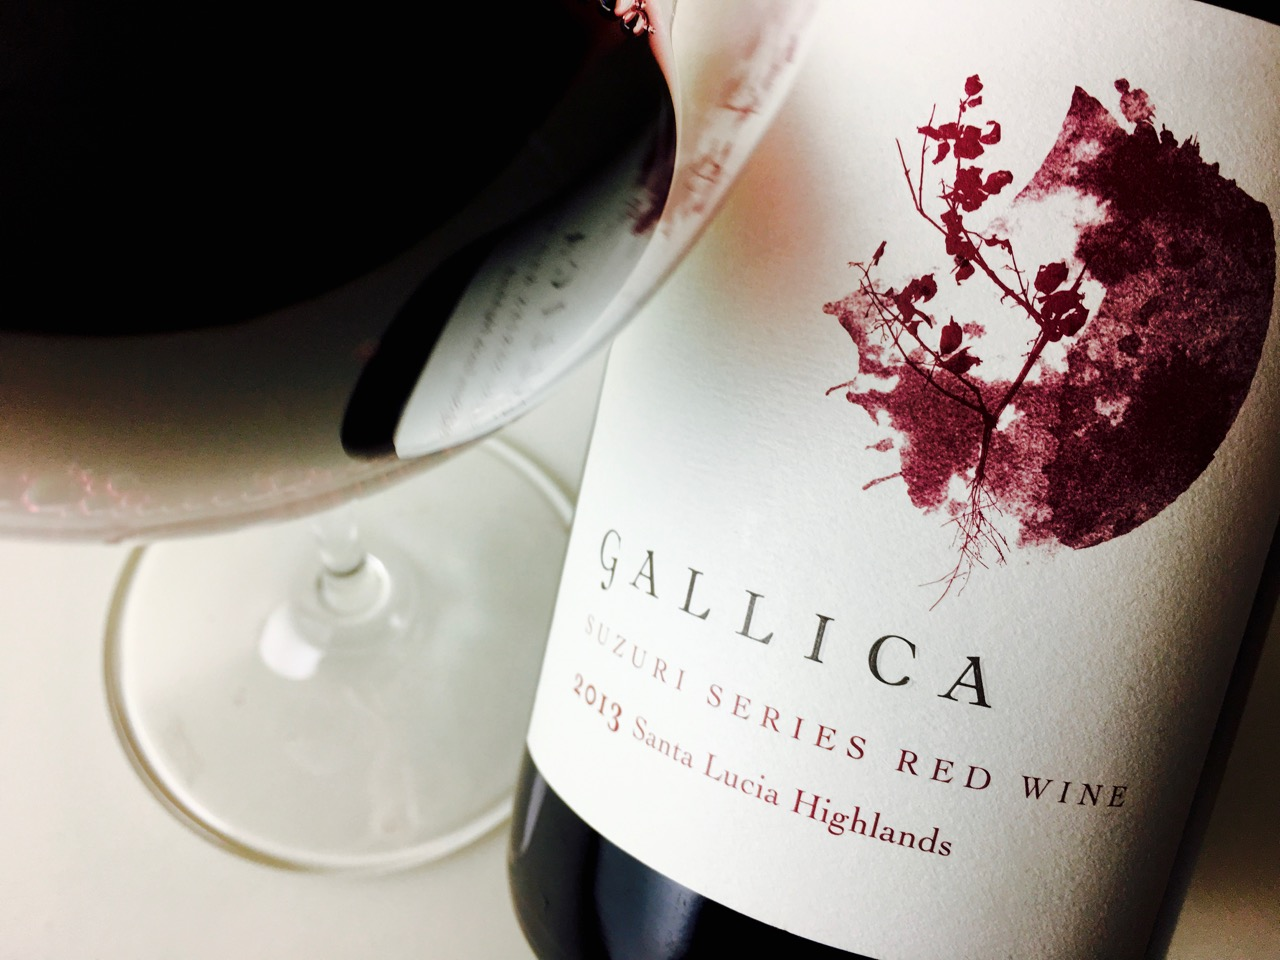 2013 Gallica Red Wine Suzuri Series Soberanes Vineyard, Santa Lucia Highlands